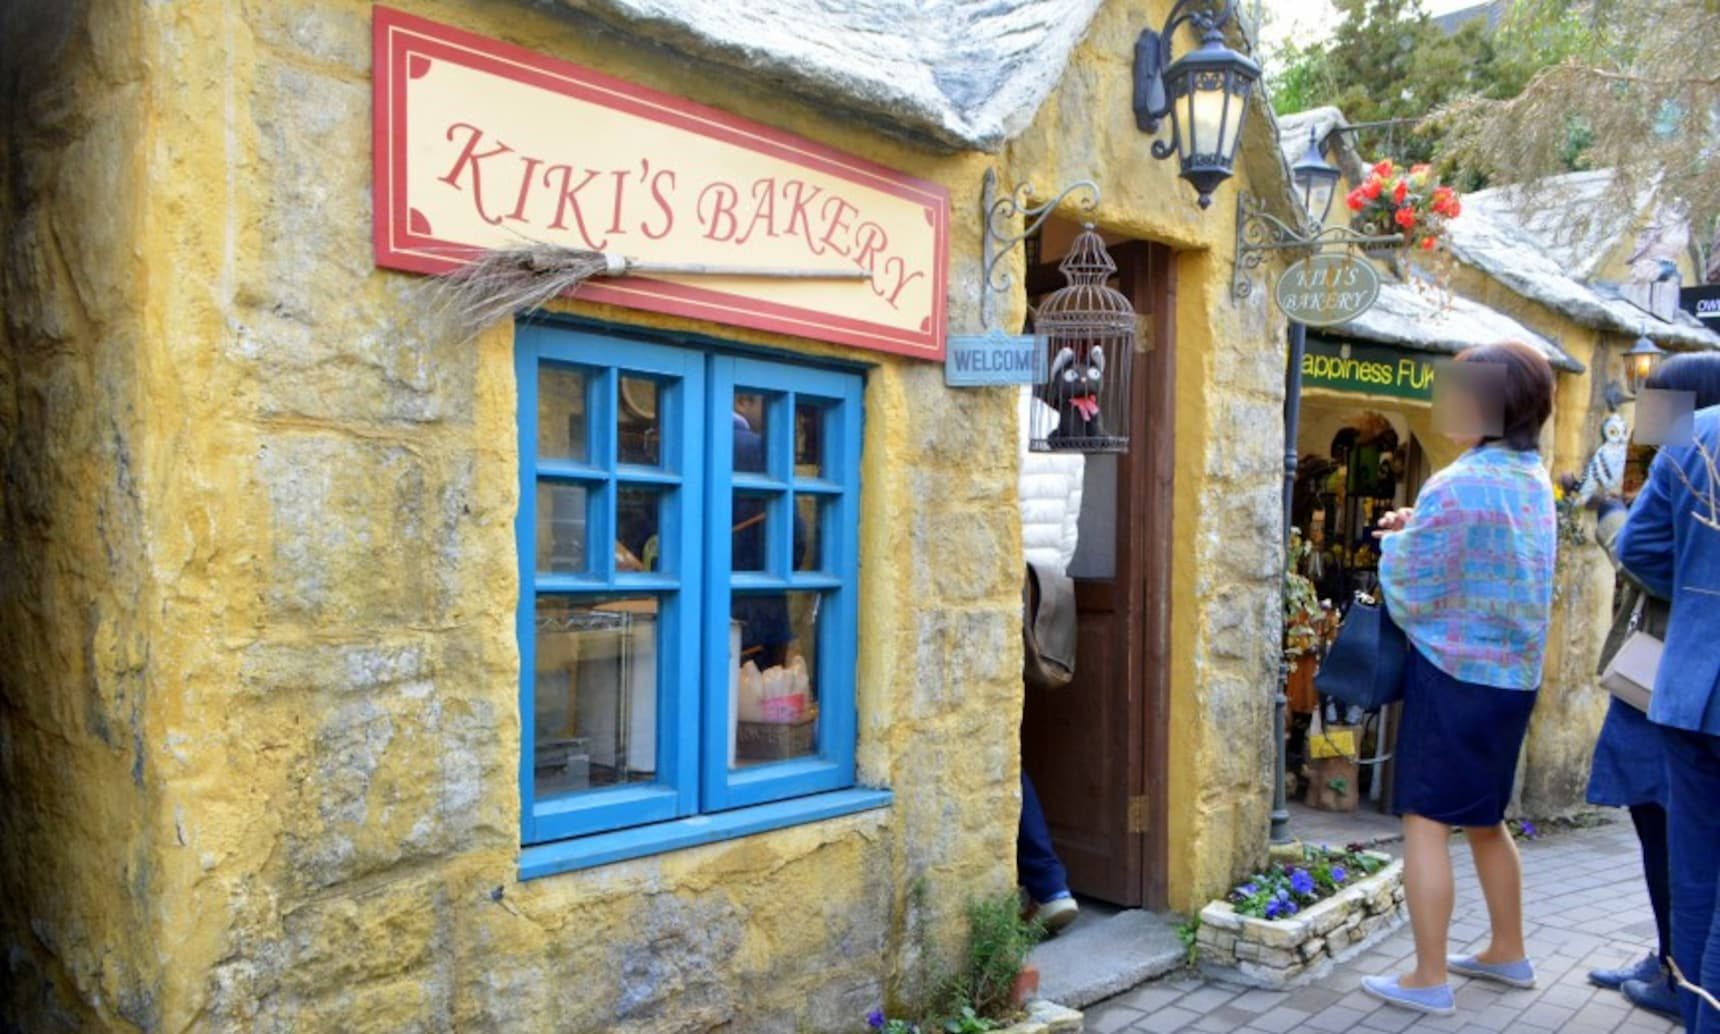 Check Out the Real Kiki's Bakery!